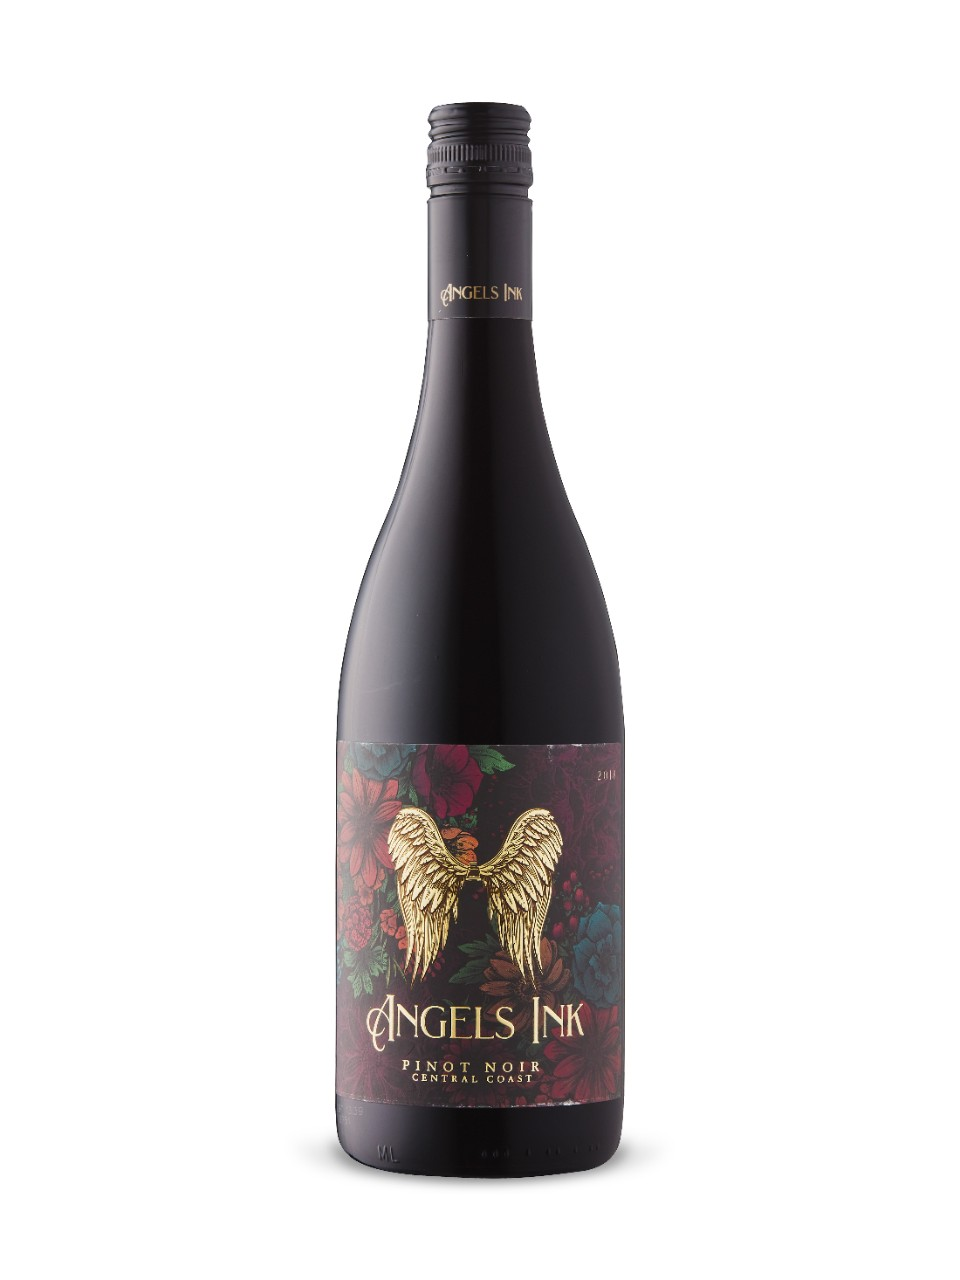 Angels Ink Pinot Noir 2018 from LCBO